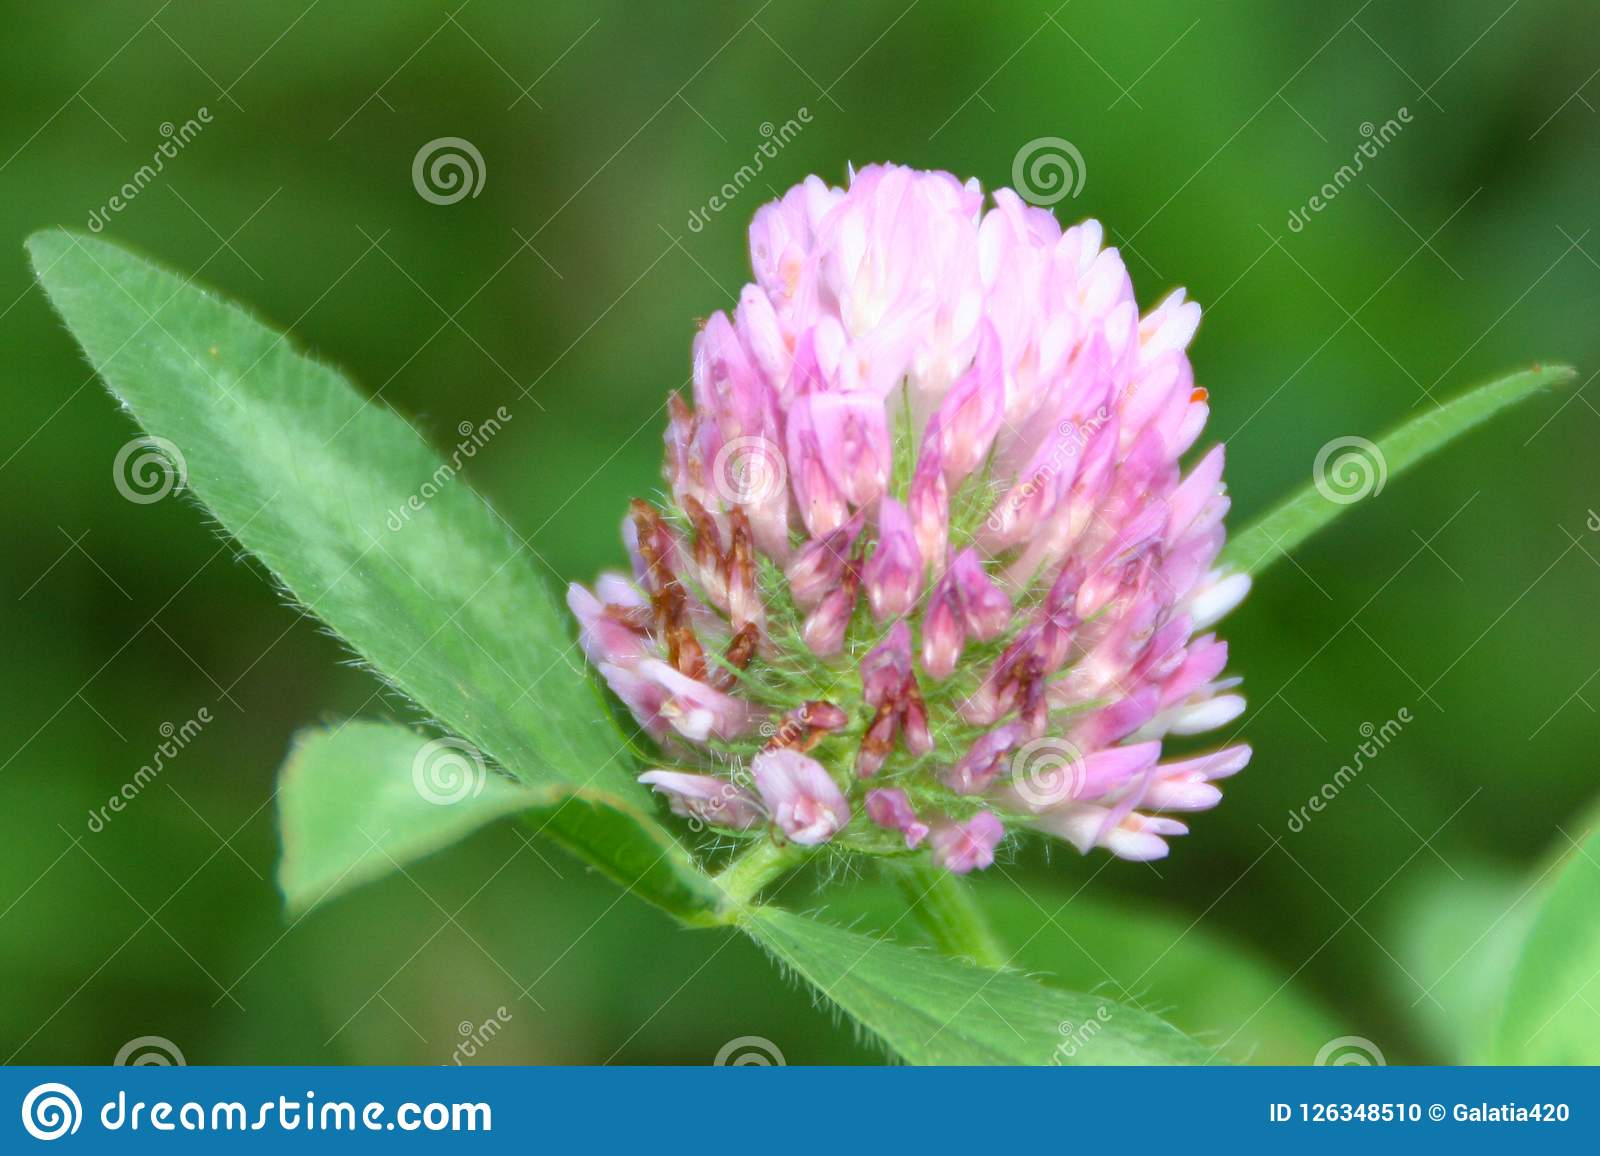 Really Beautiful Pink And White Flower Stock Photo Image Of